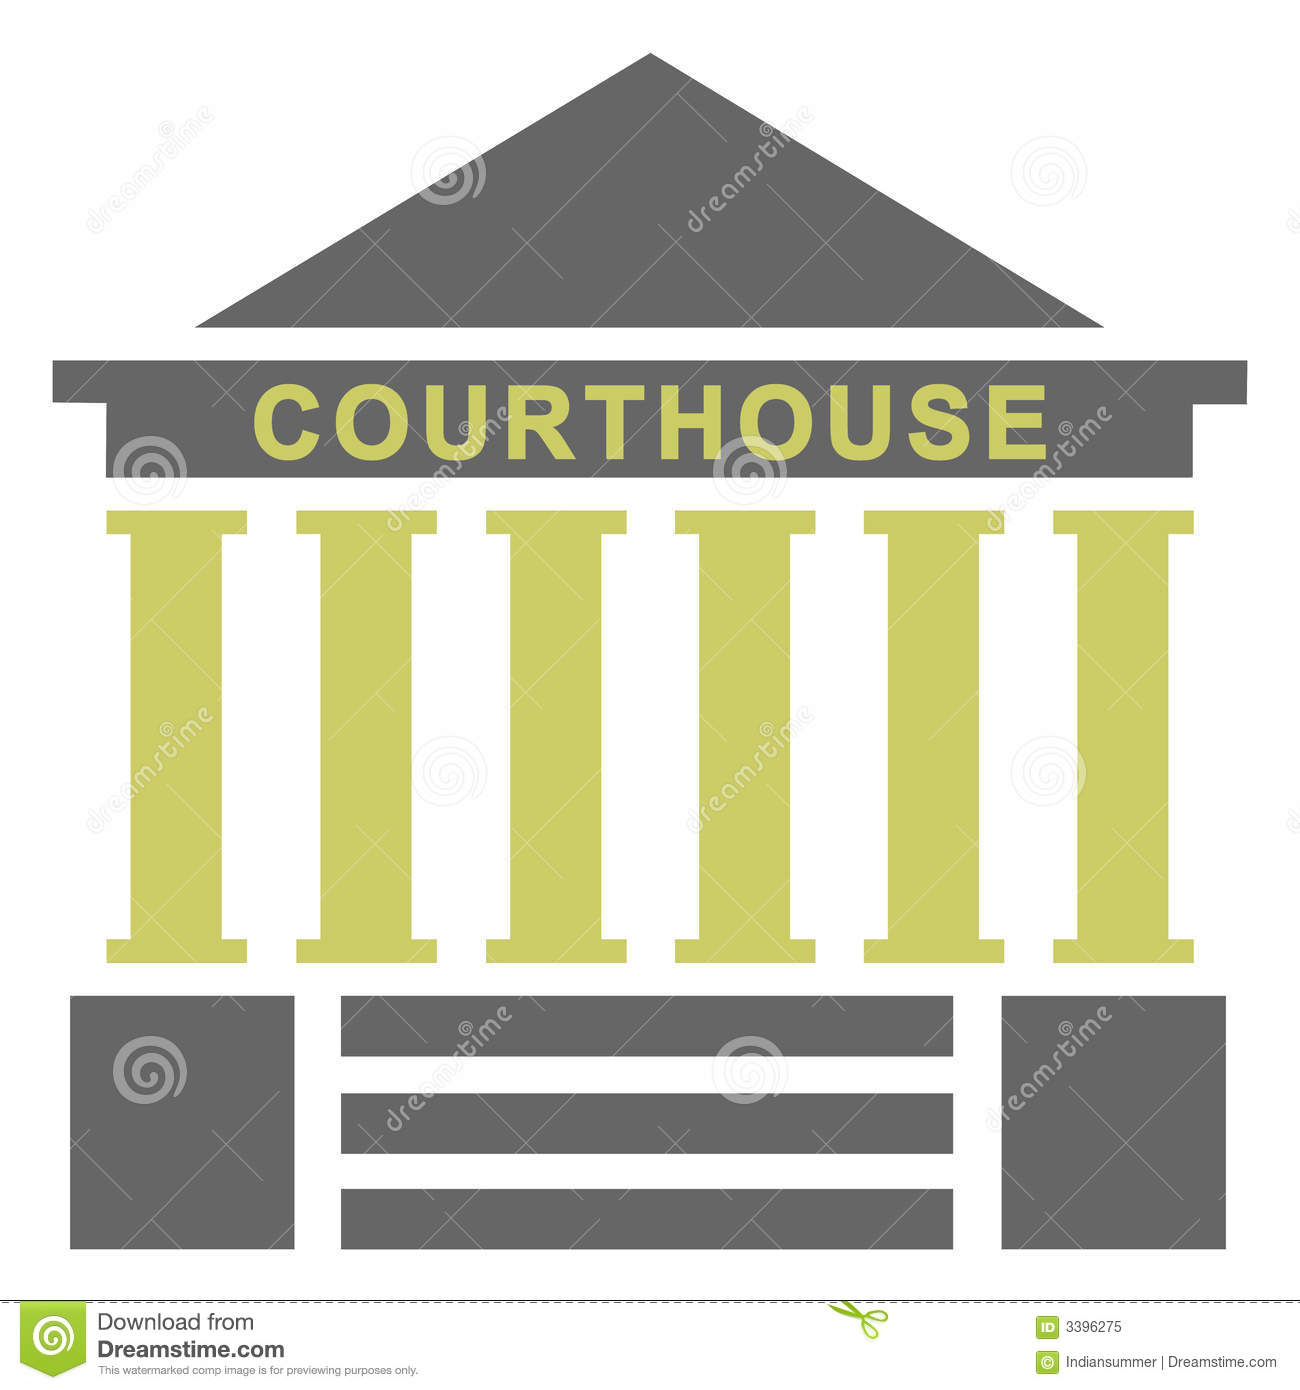 Only Metaphor >> Courthouse illustration stock illustration. Image of poster - 3396275